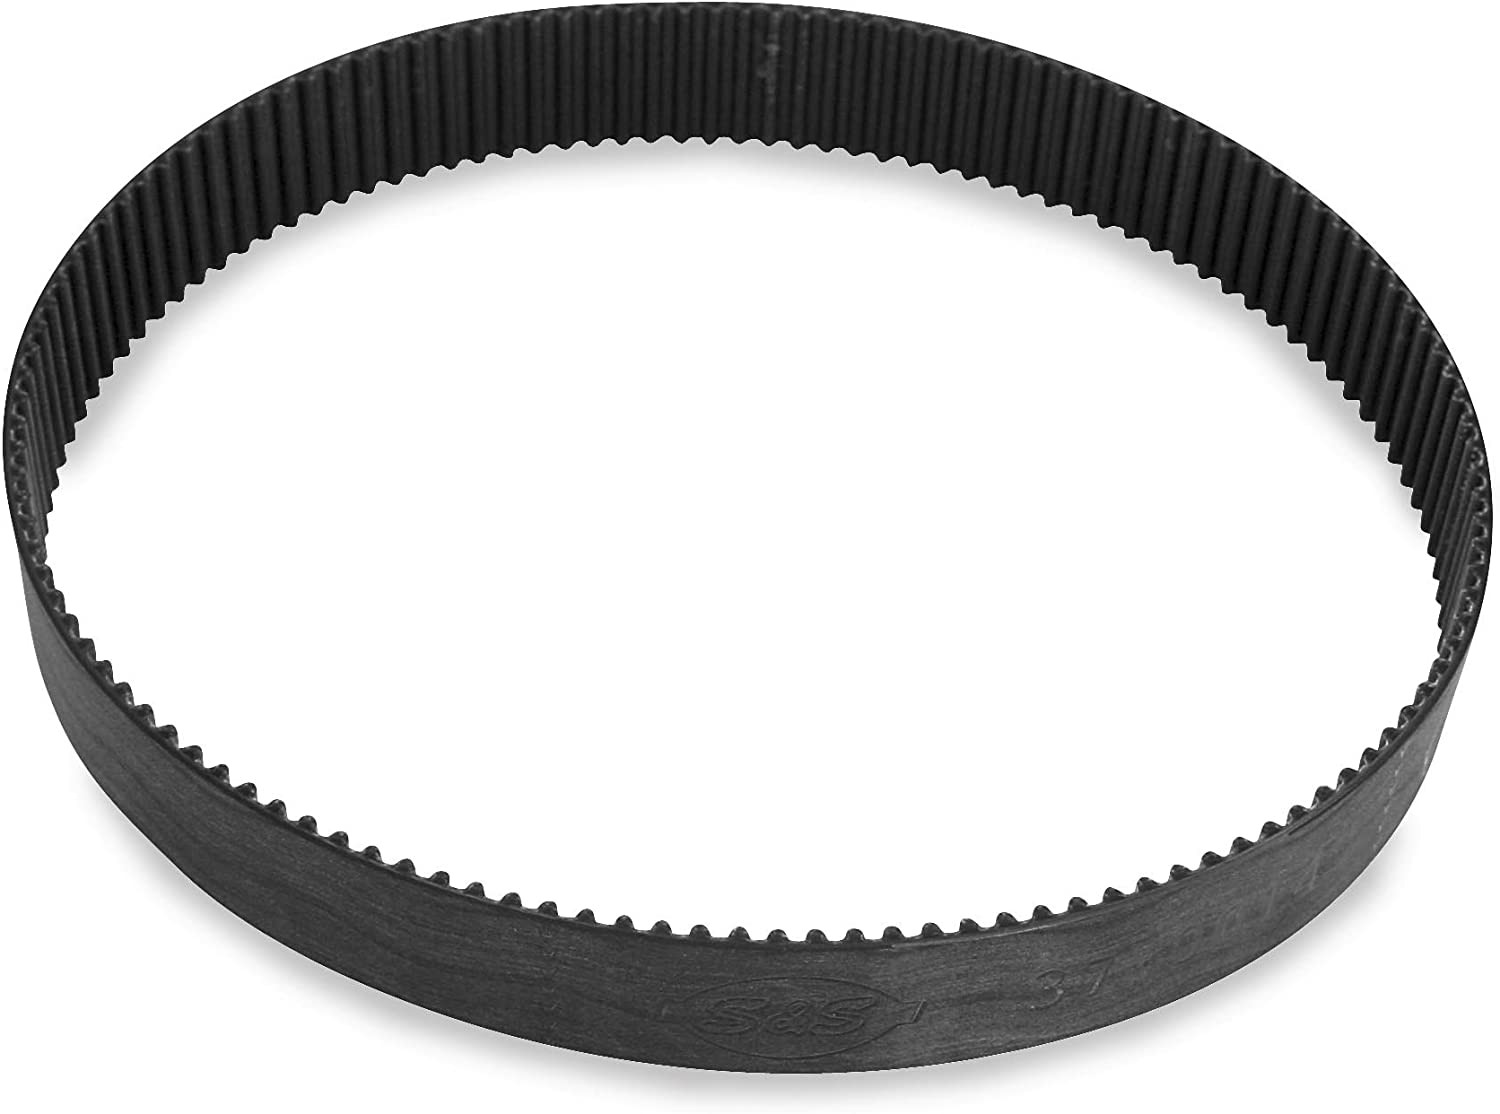 14mm 136 Tooth Final Drive Belt S/&S//Gates High Strength 1-1//2in